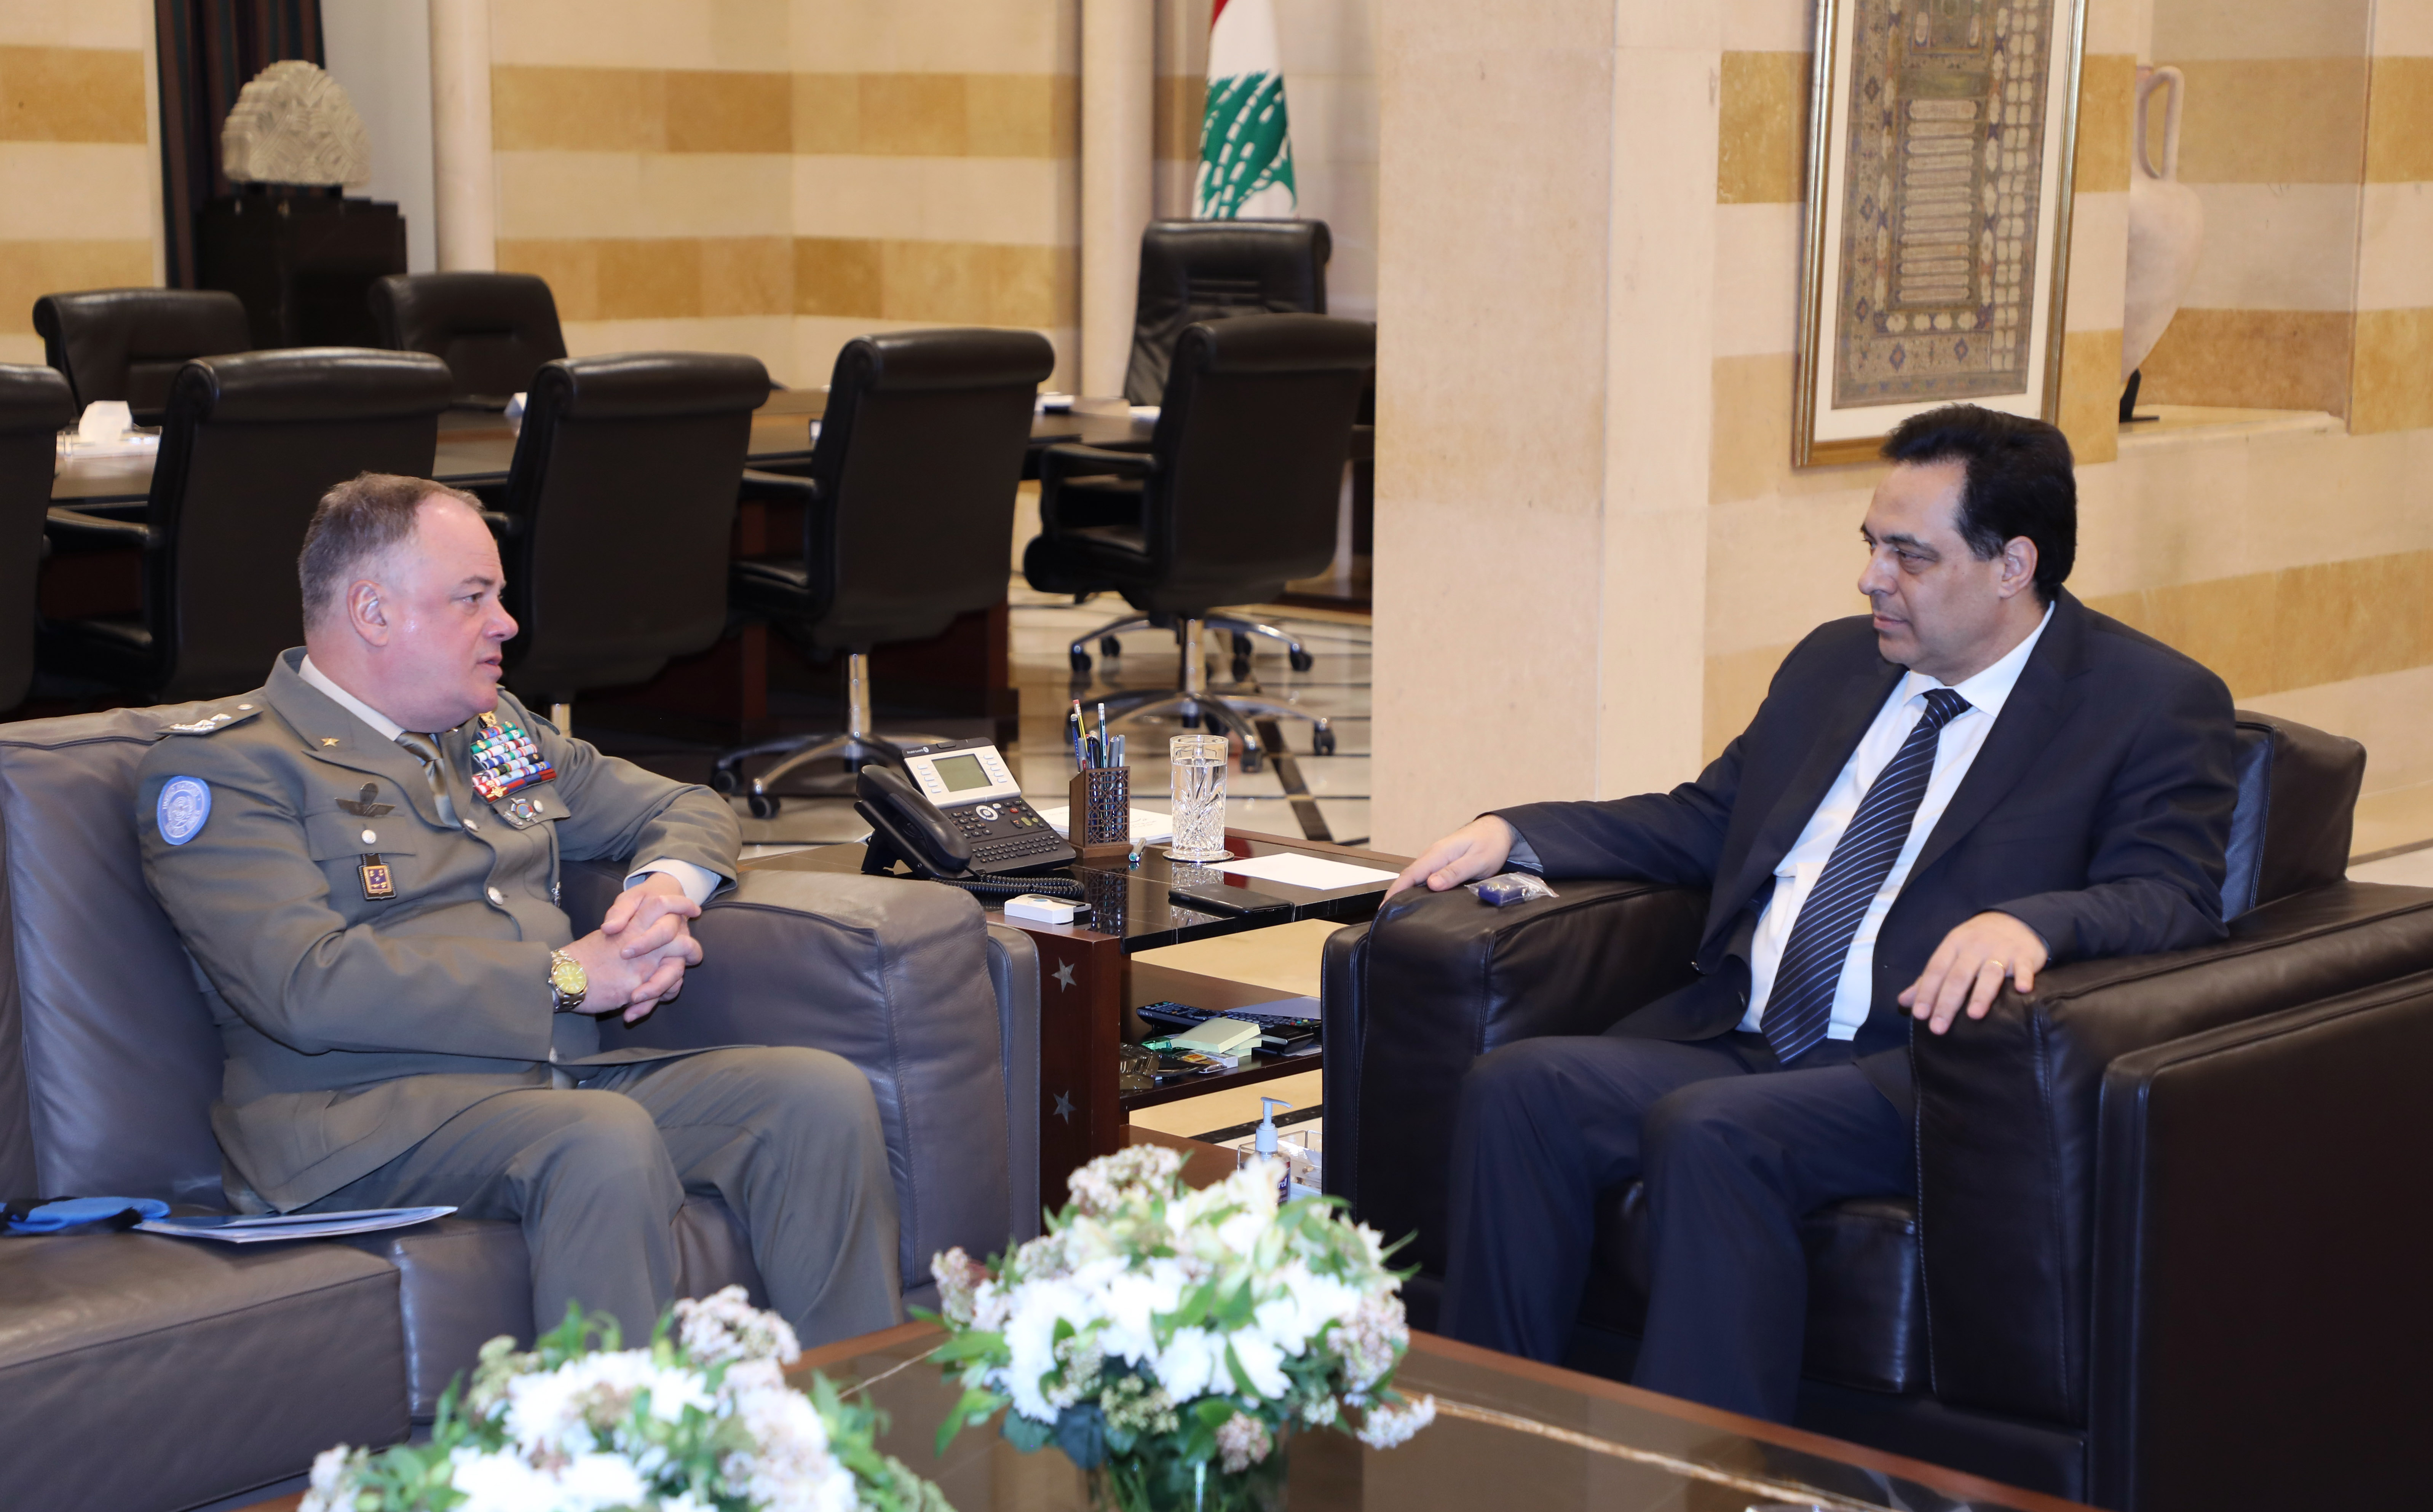 Pr Minister Hassan Diab meets a Delegation from UNIFIL